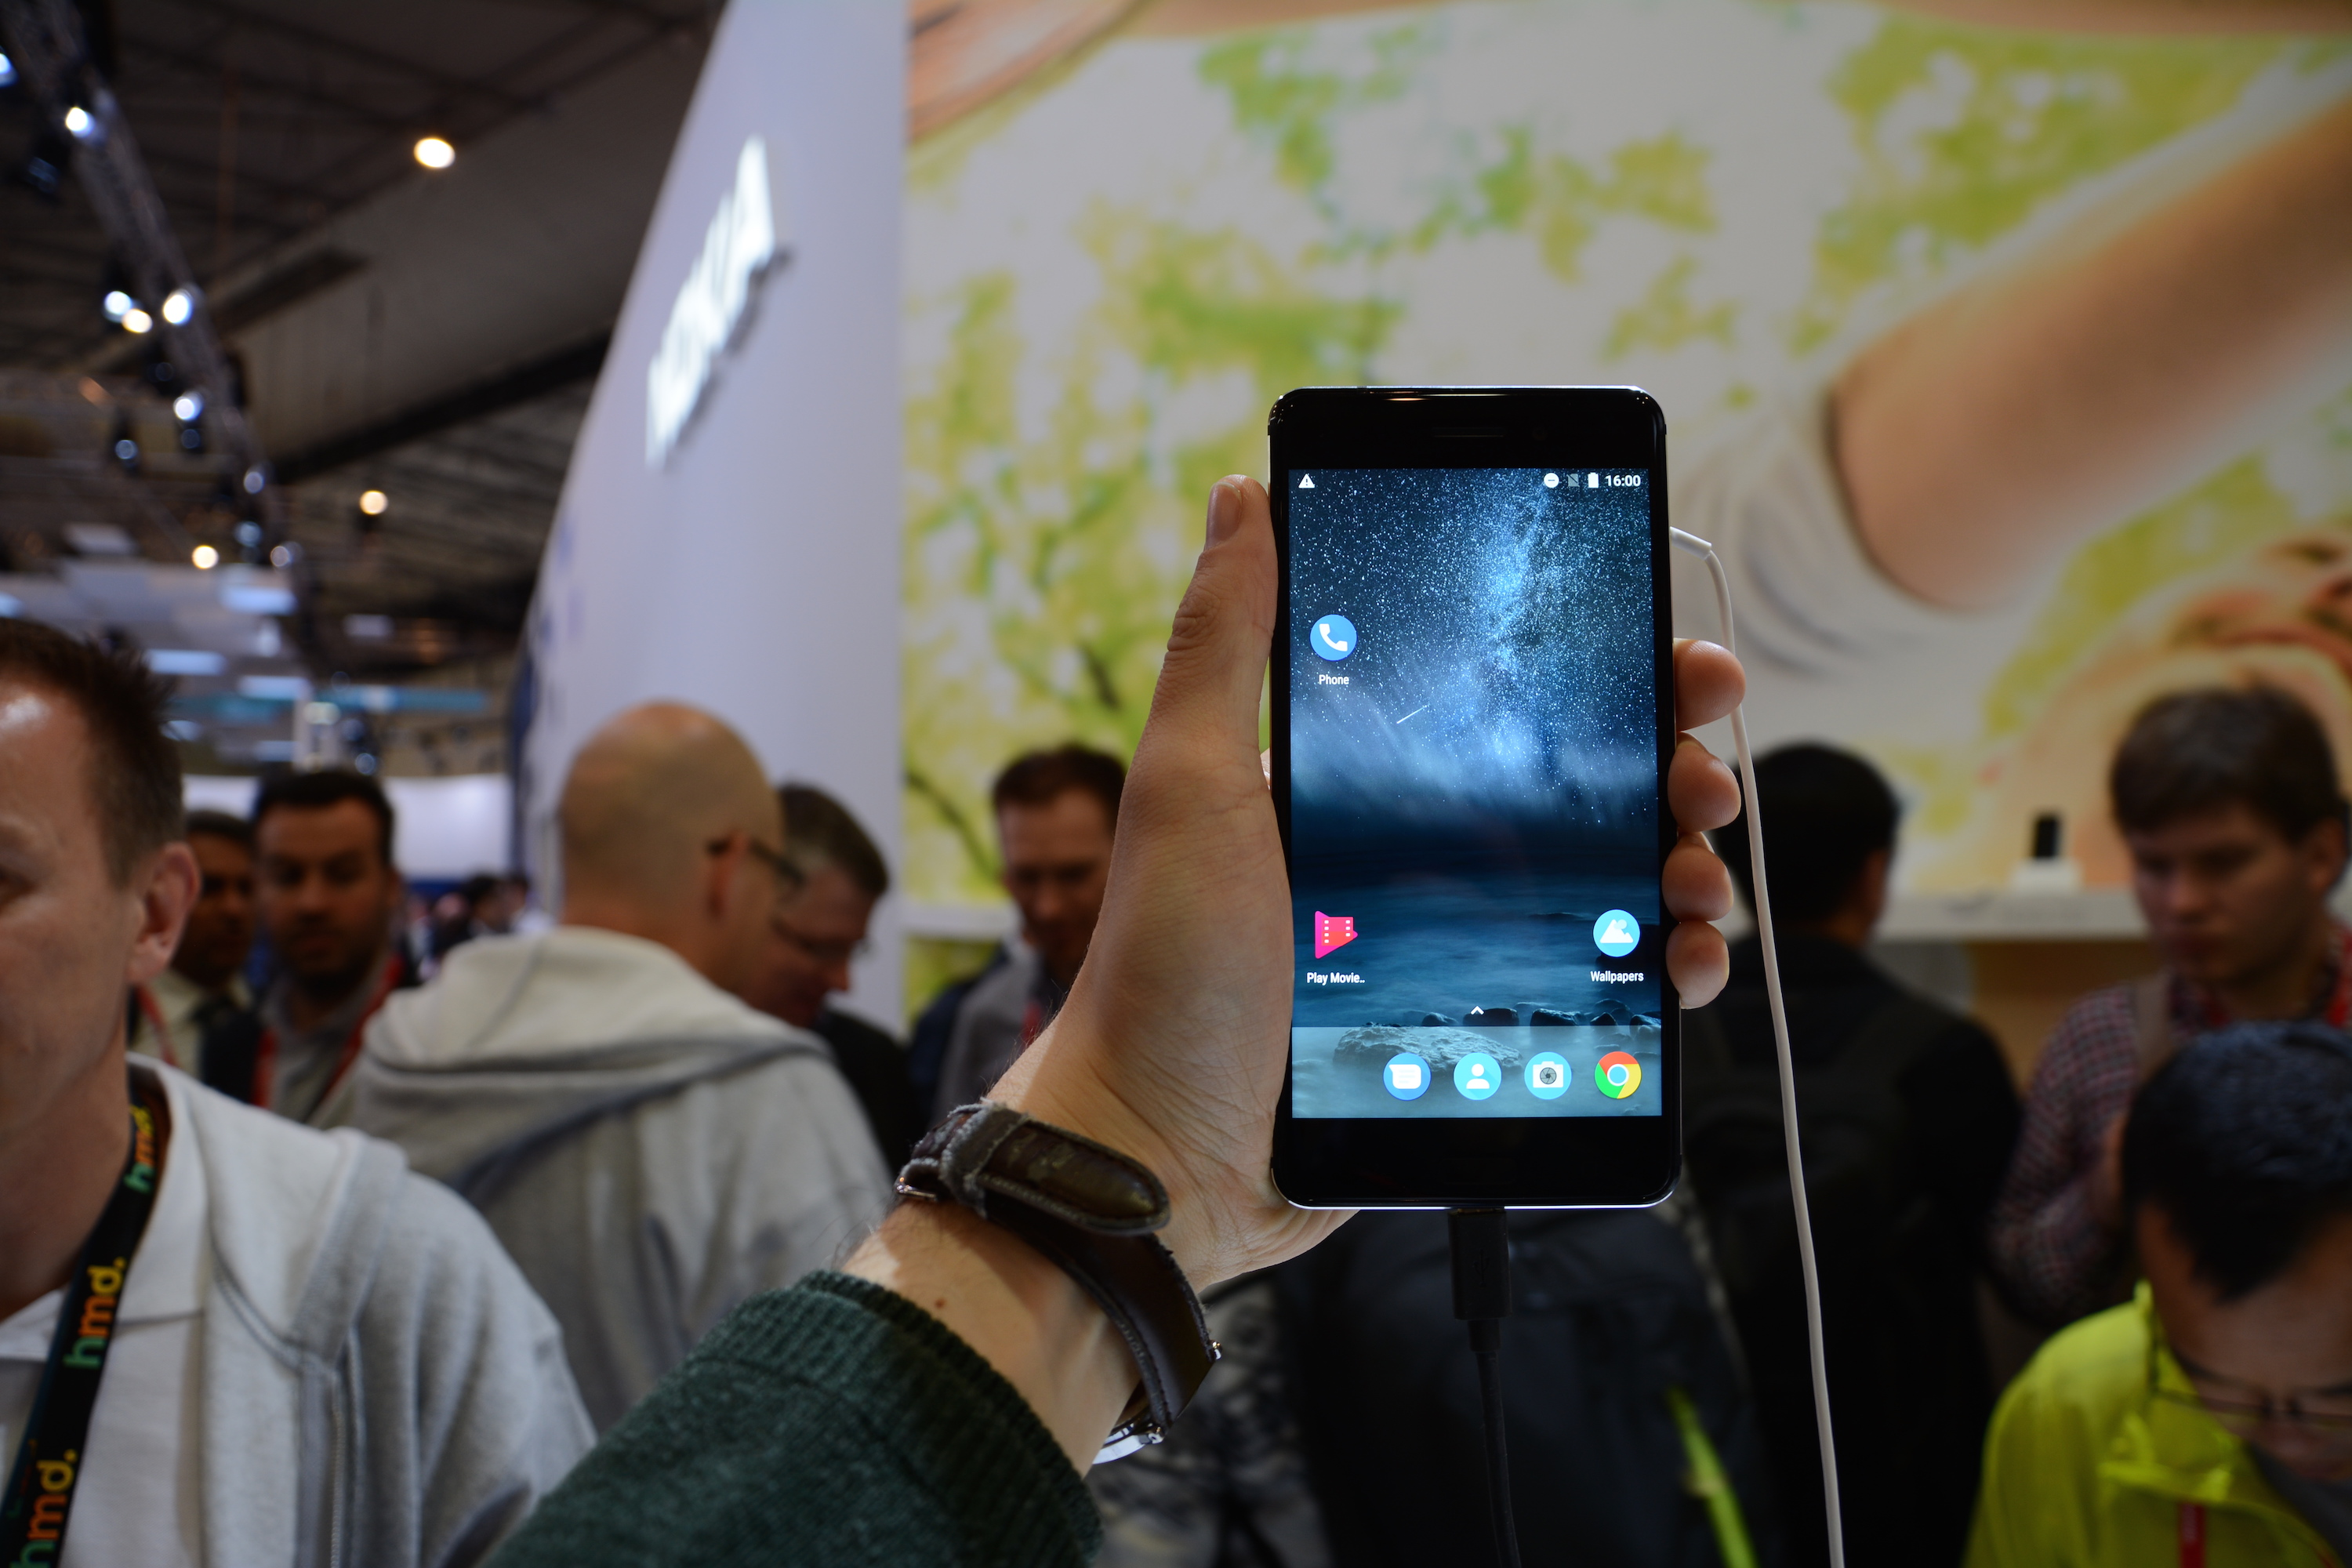 Nokia x5 00 images amp pictures becuo - The Nokia 6 Is A Wonderfully Priced Little Handset With A Clear Focus On Aesthetics Without Sacrificing Performance I Can See Nokia Ruffling A Few